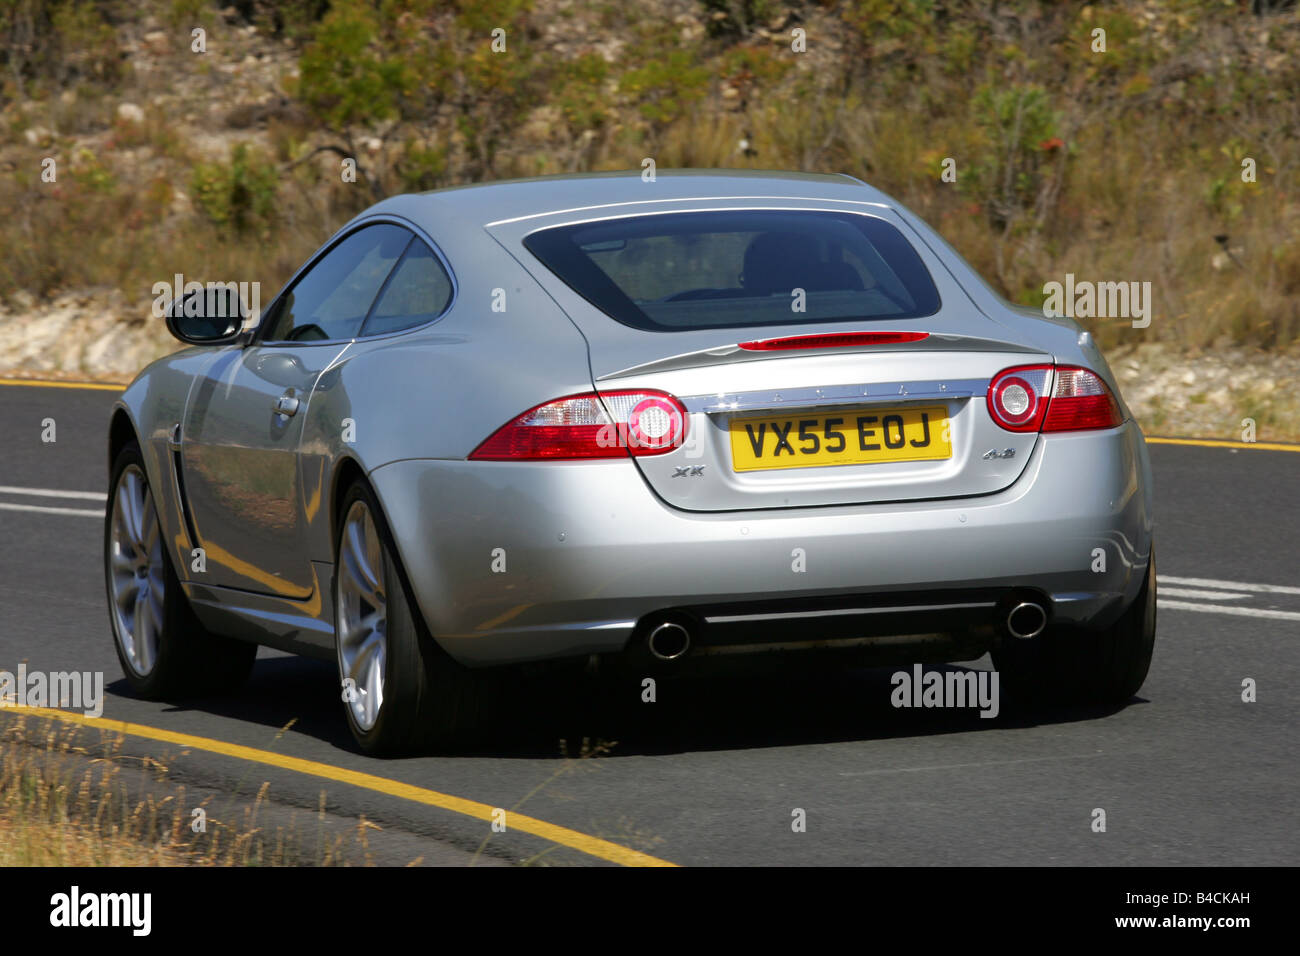 Jaguar Xk 4 2 V8 Coupe High Resolution Stock Photography And Images Alamy